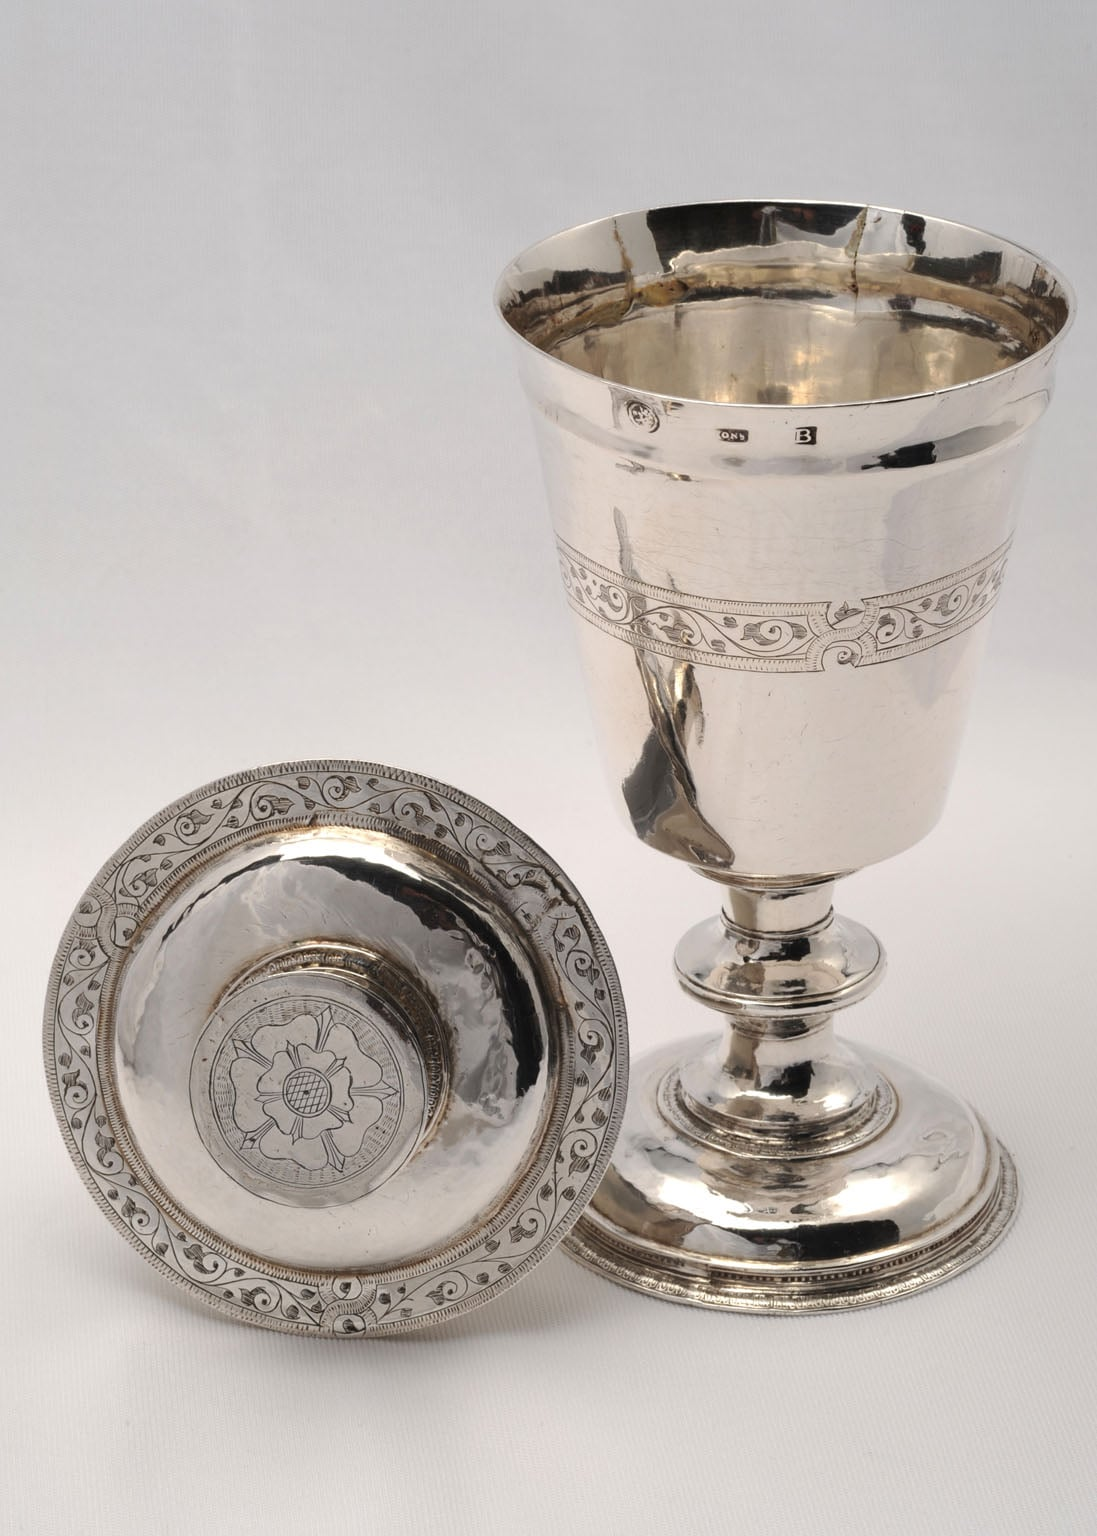 Communion cup and patten